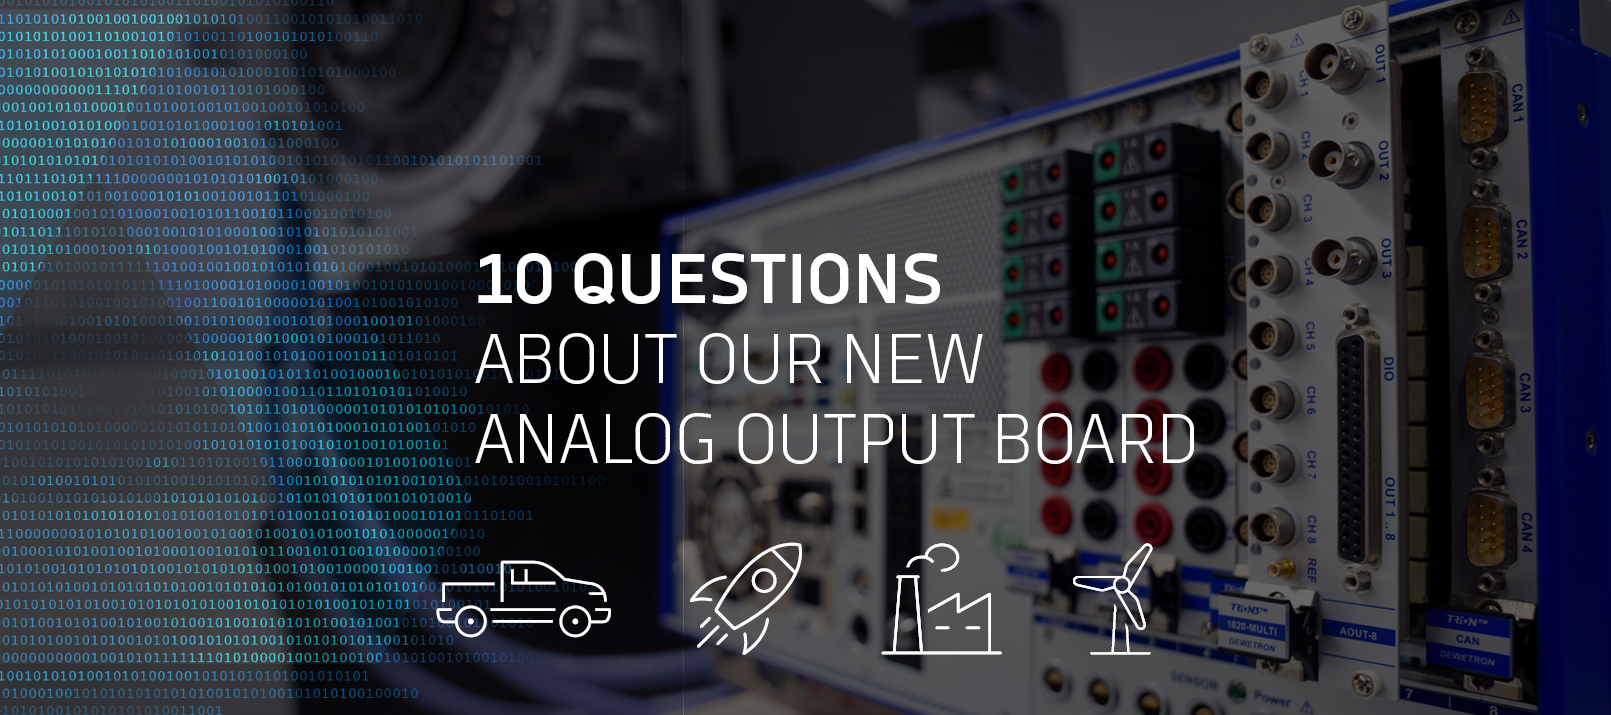 10-questions-analog-output-boar